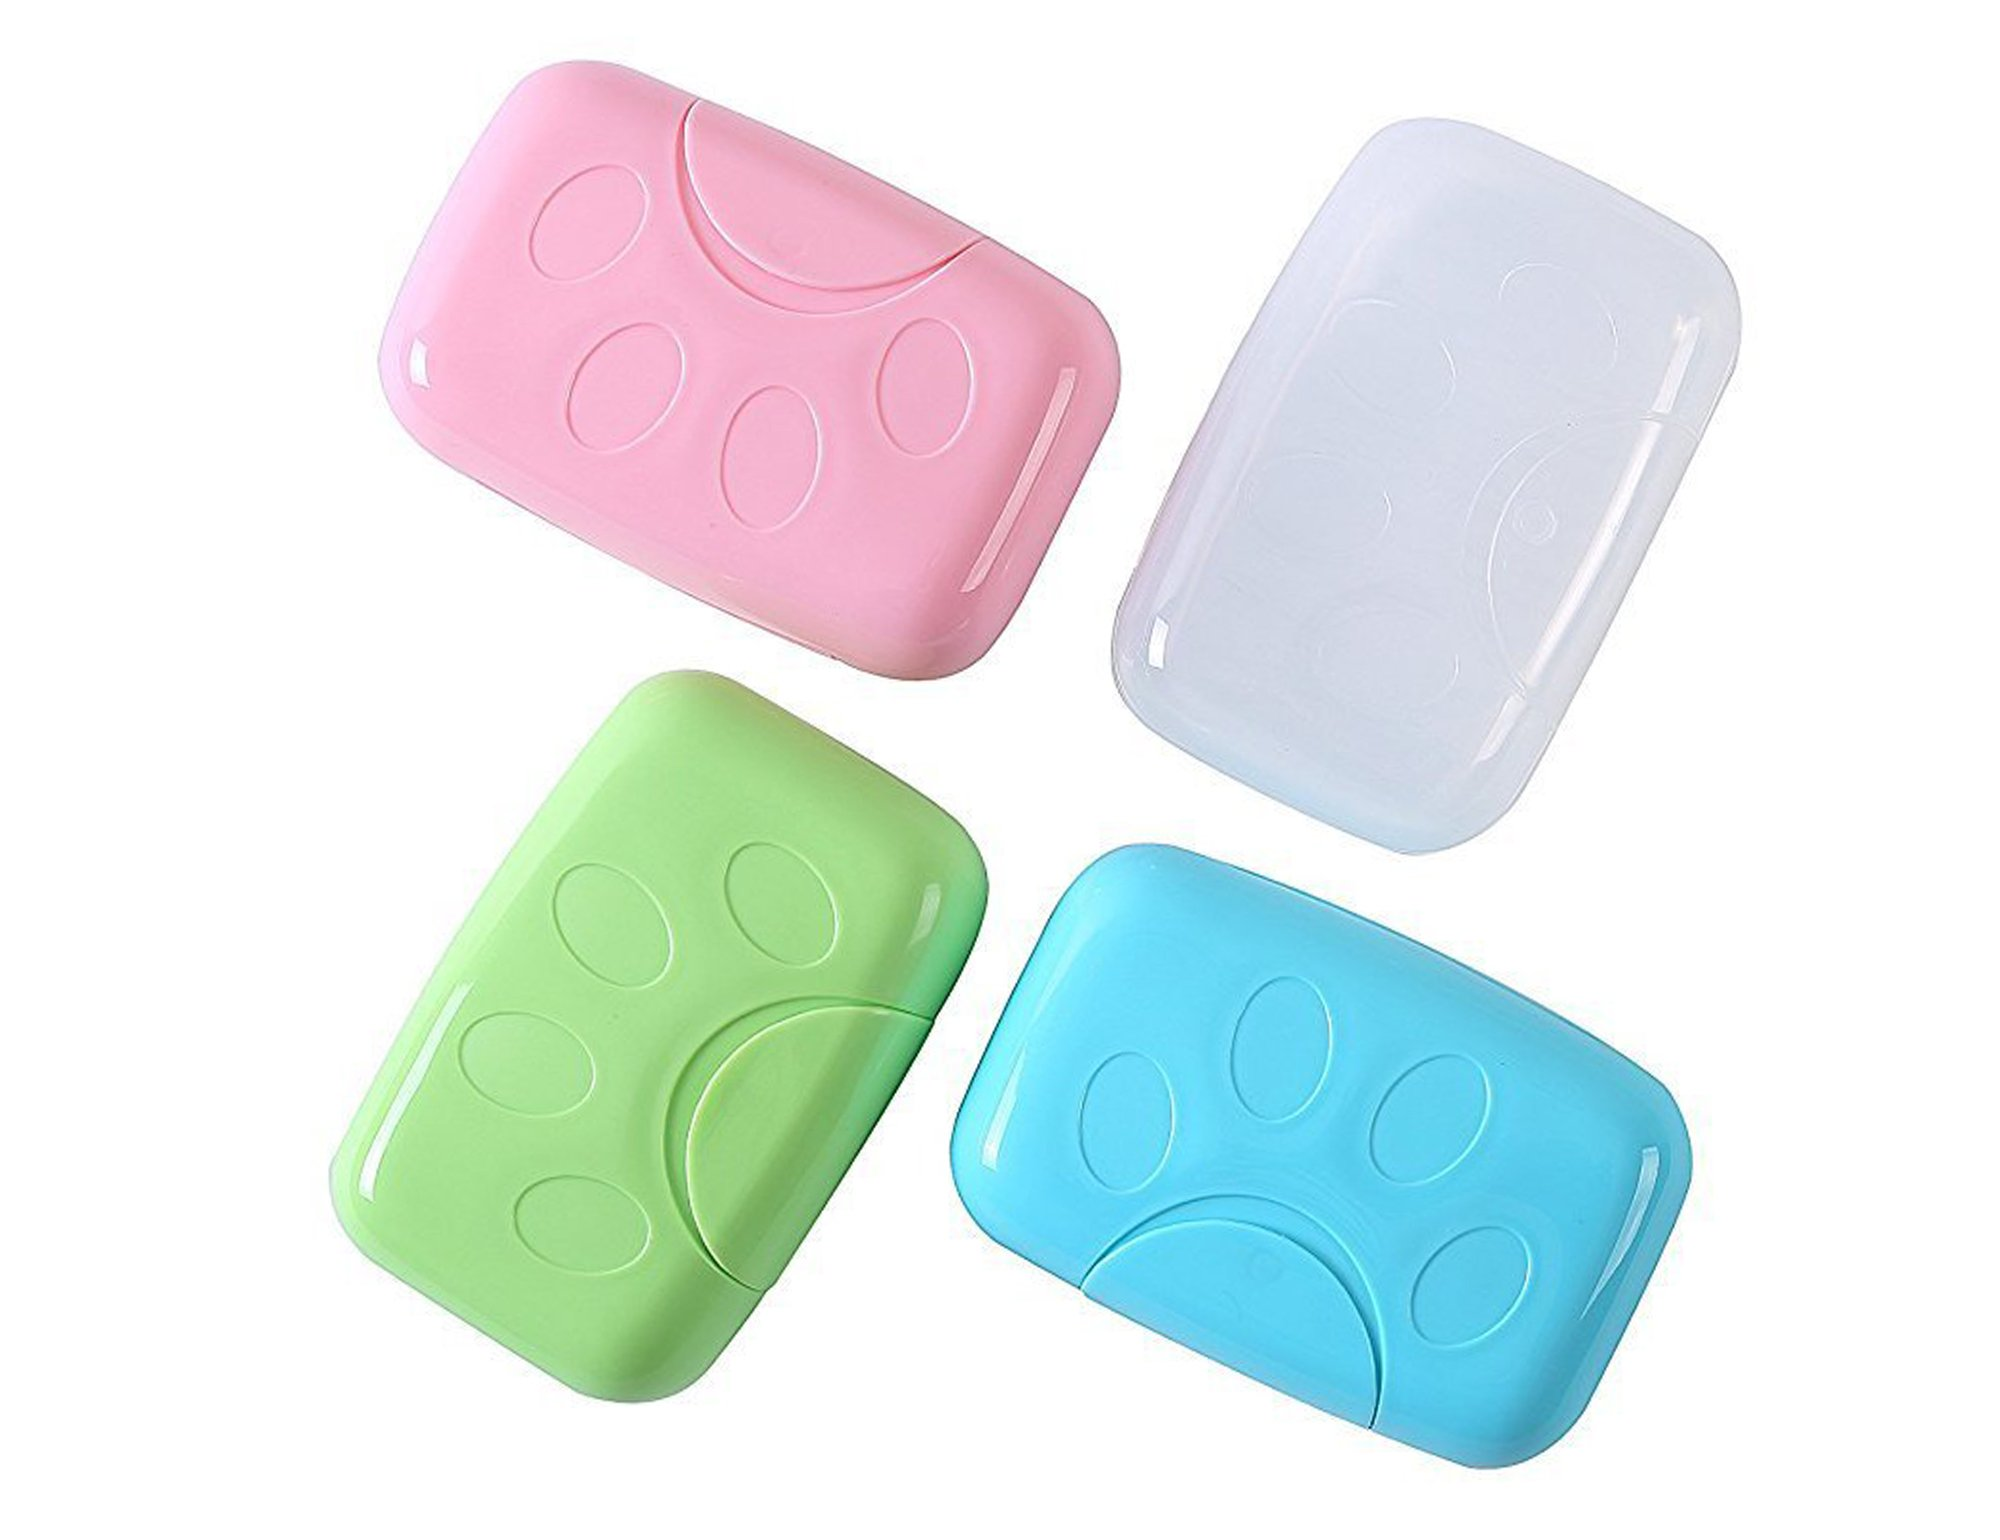 Efivs Arts Plastic Soap Case Holder Container Box Home Outdoor Hiking Camping Travel Set of 4